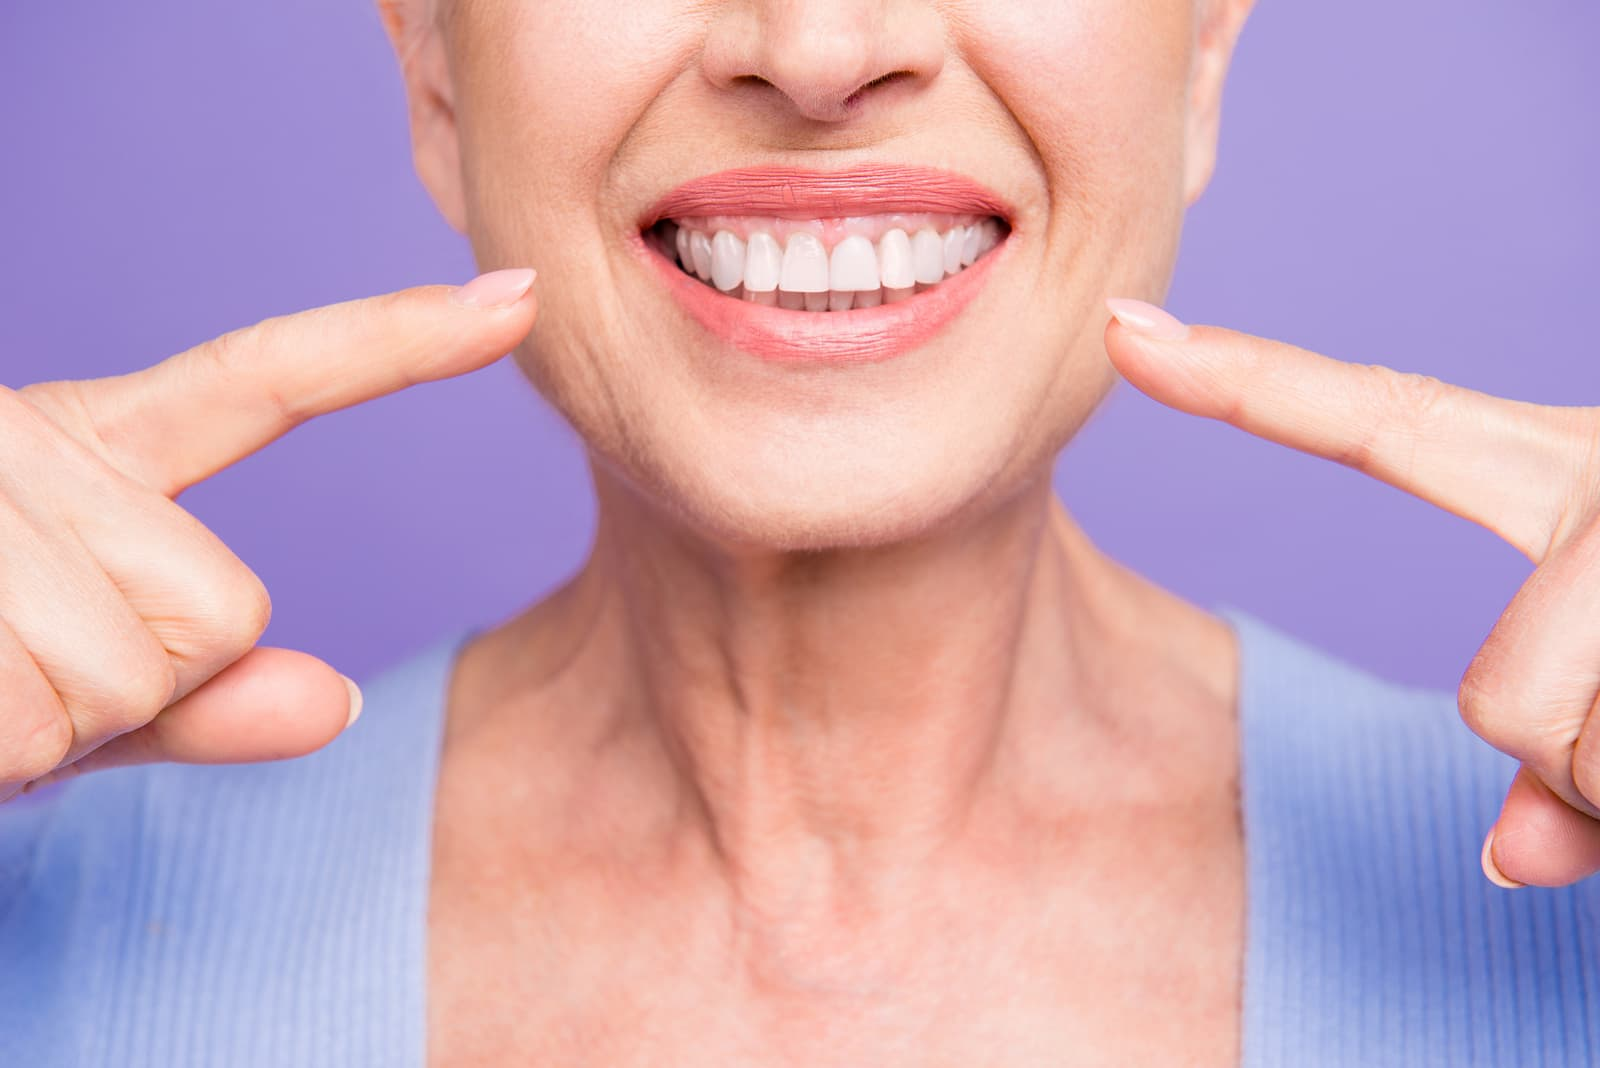 Restoring Your Gum Line With Pinhole Gum Rejuvenation